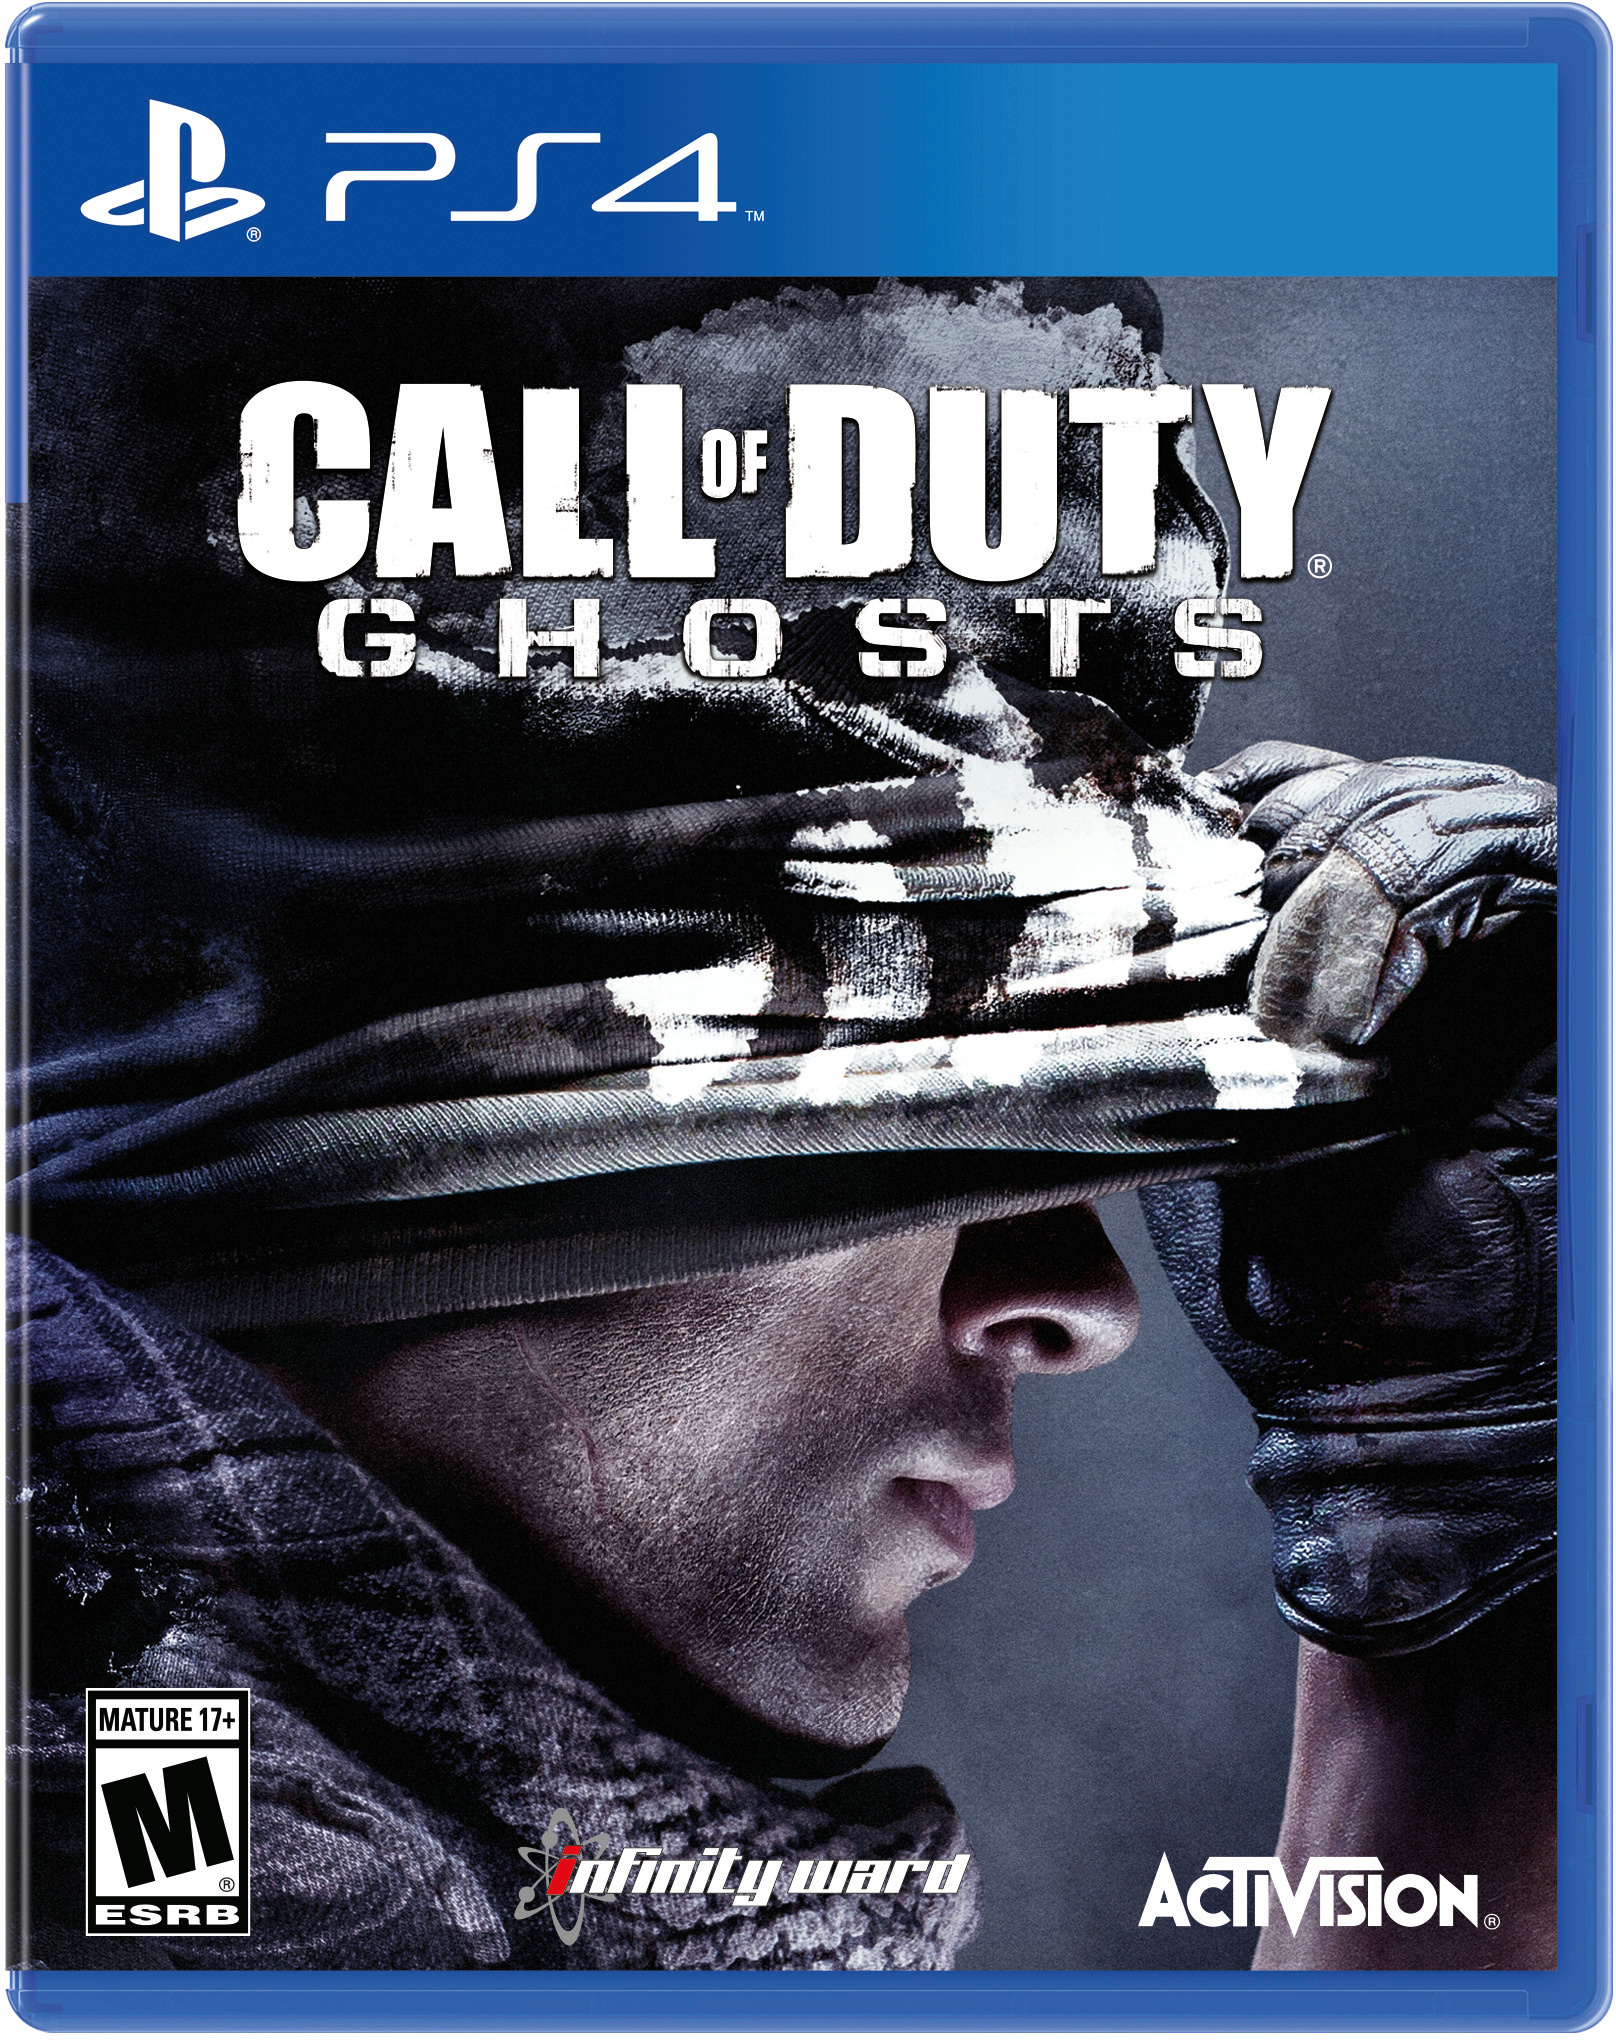 COD_Ghosts_Boxart_PS4.jpg